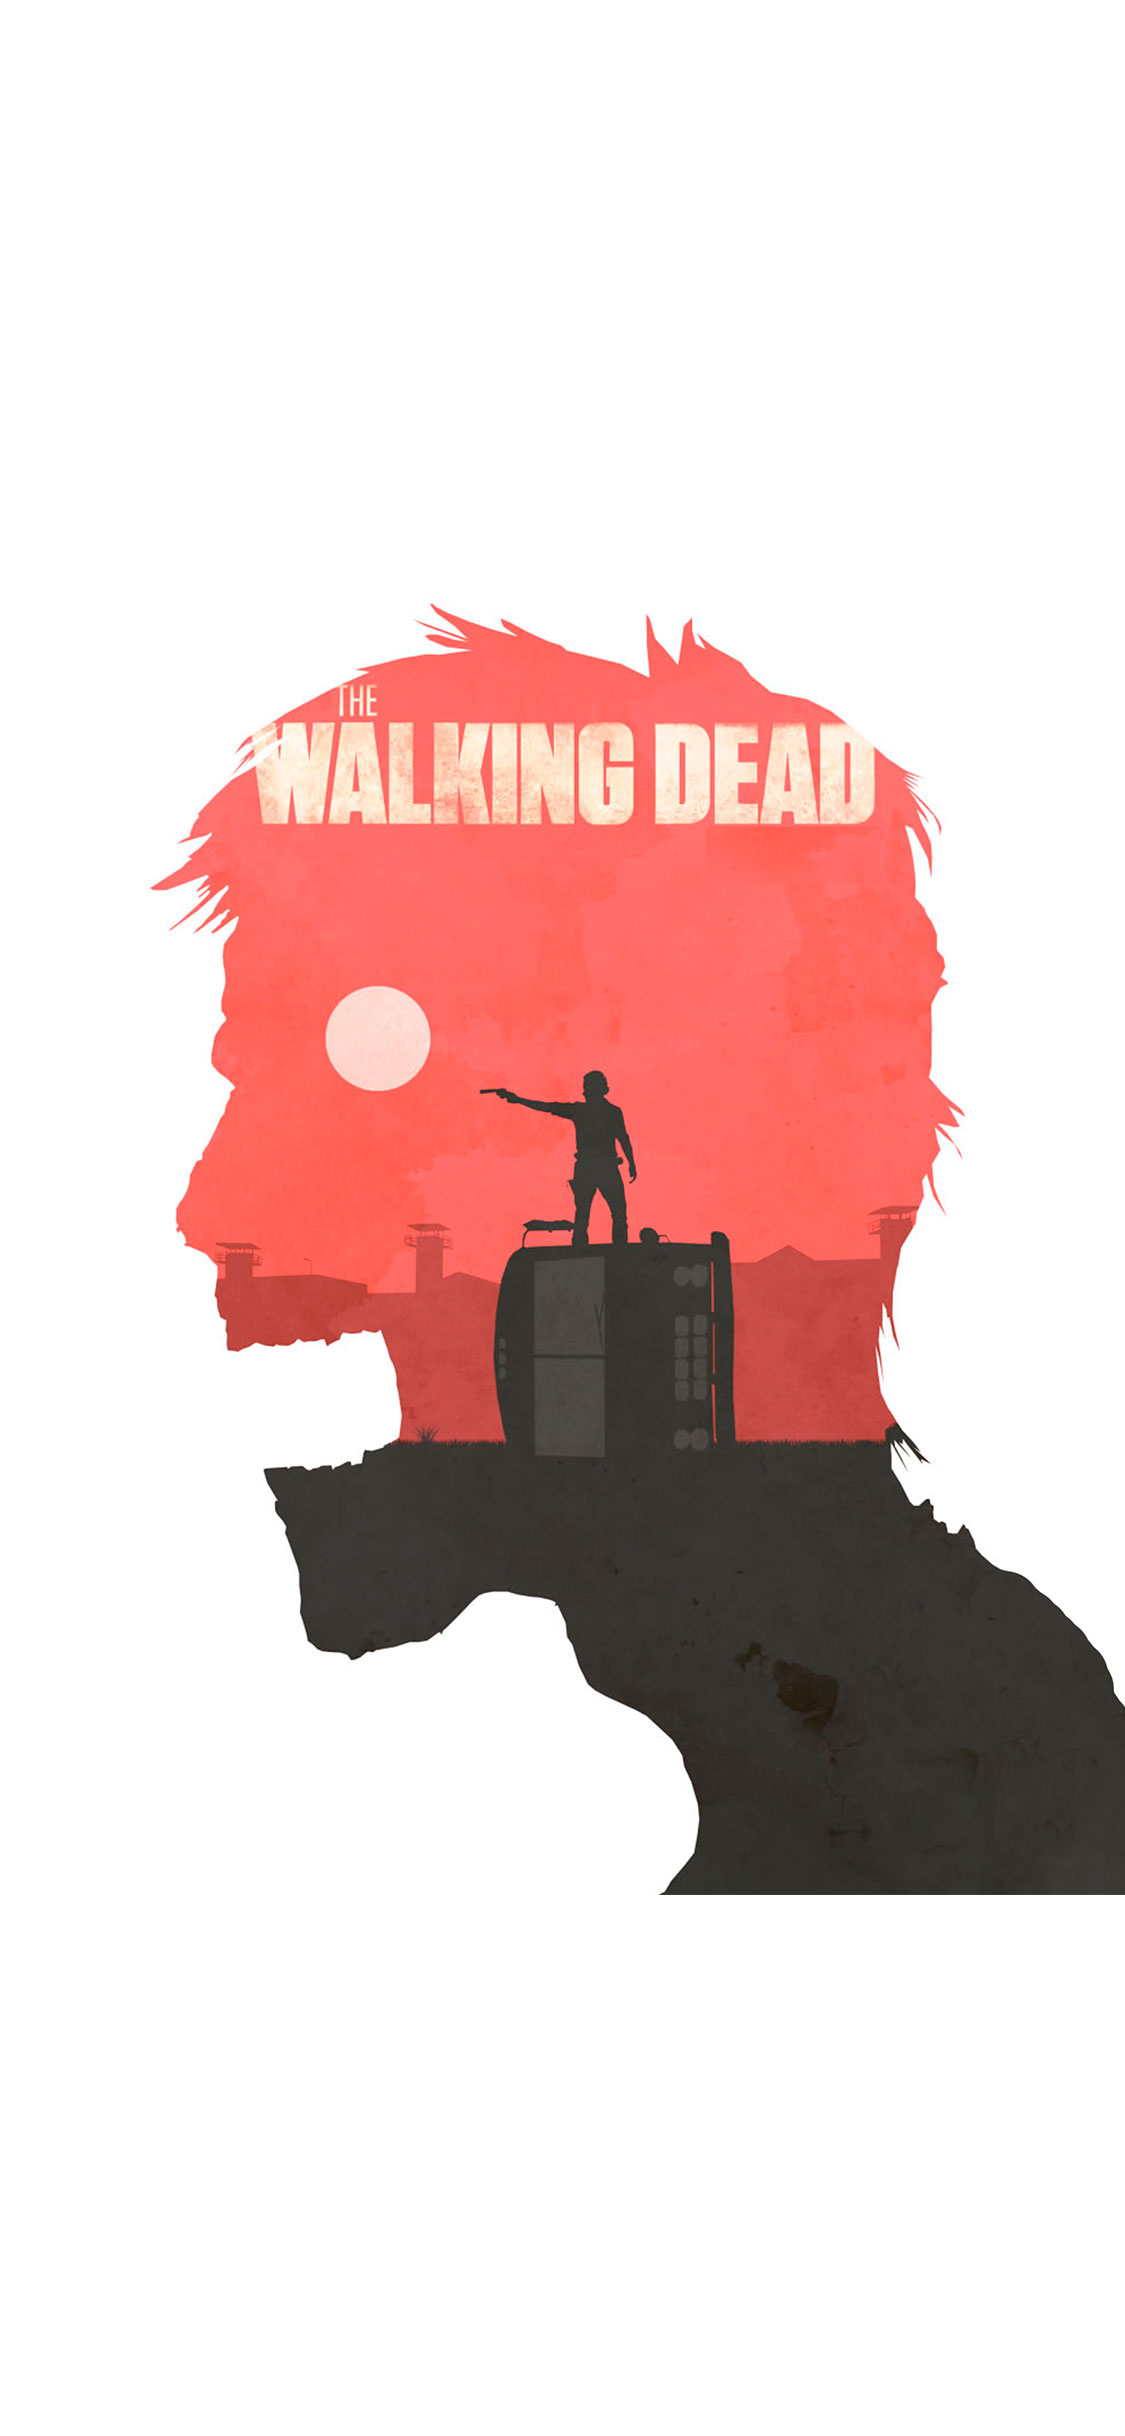 iPhone wallpapers walking dead2 The Walking Dead